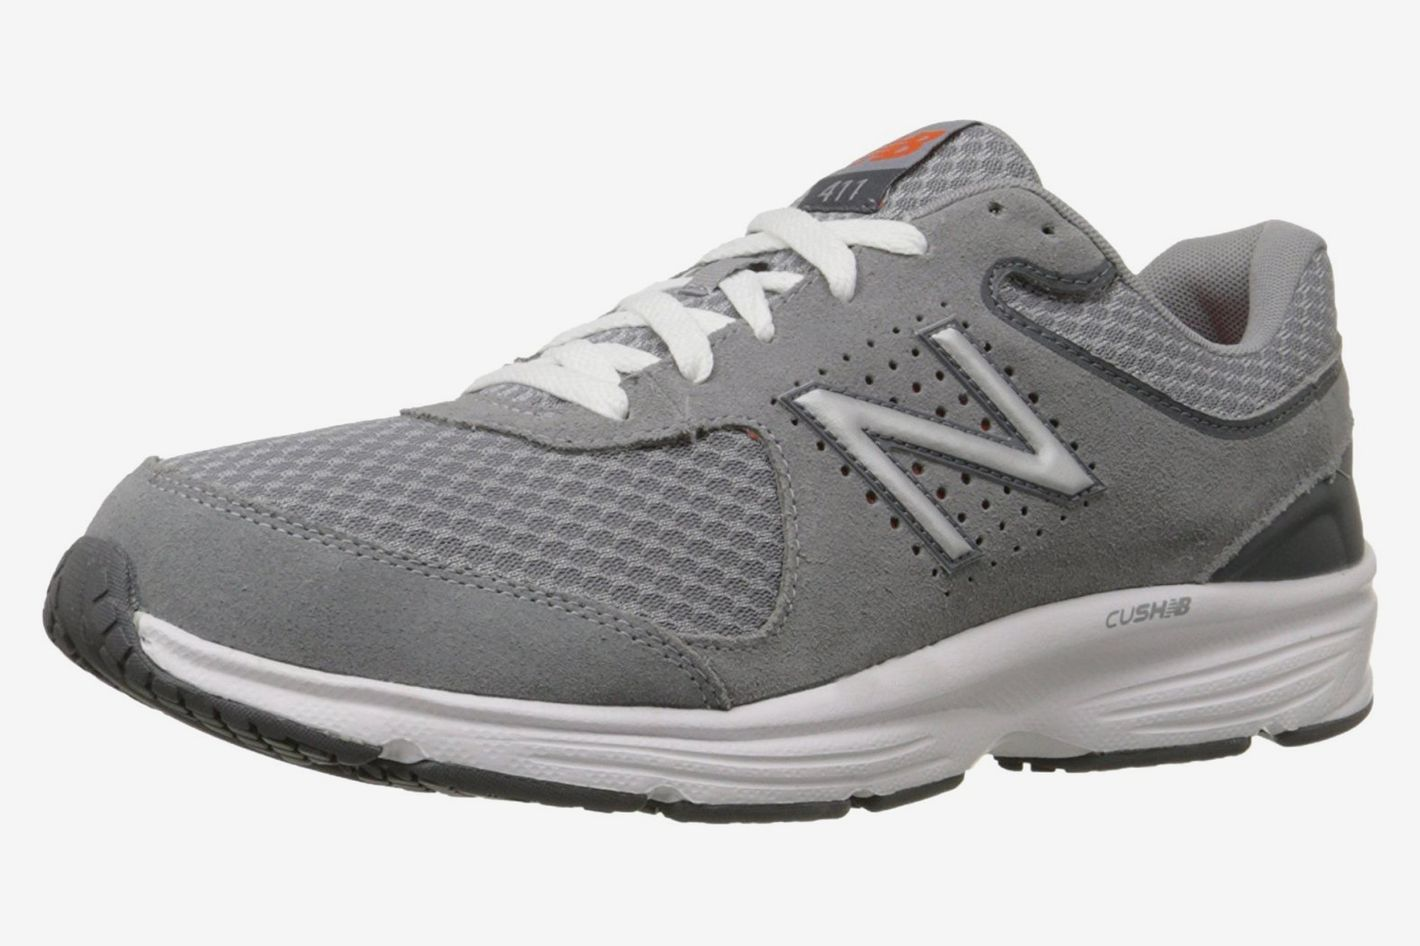 New Balance Best Shoes For Flat Feet